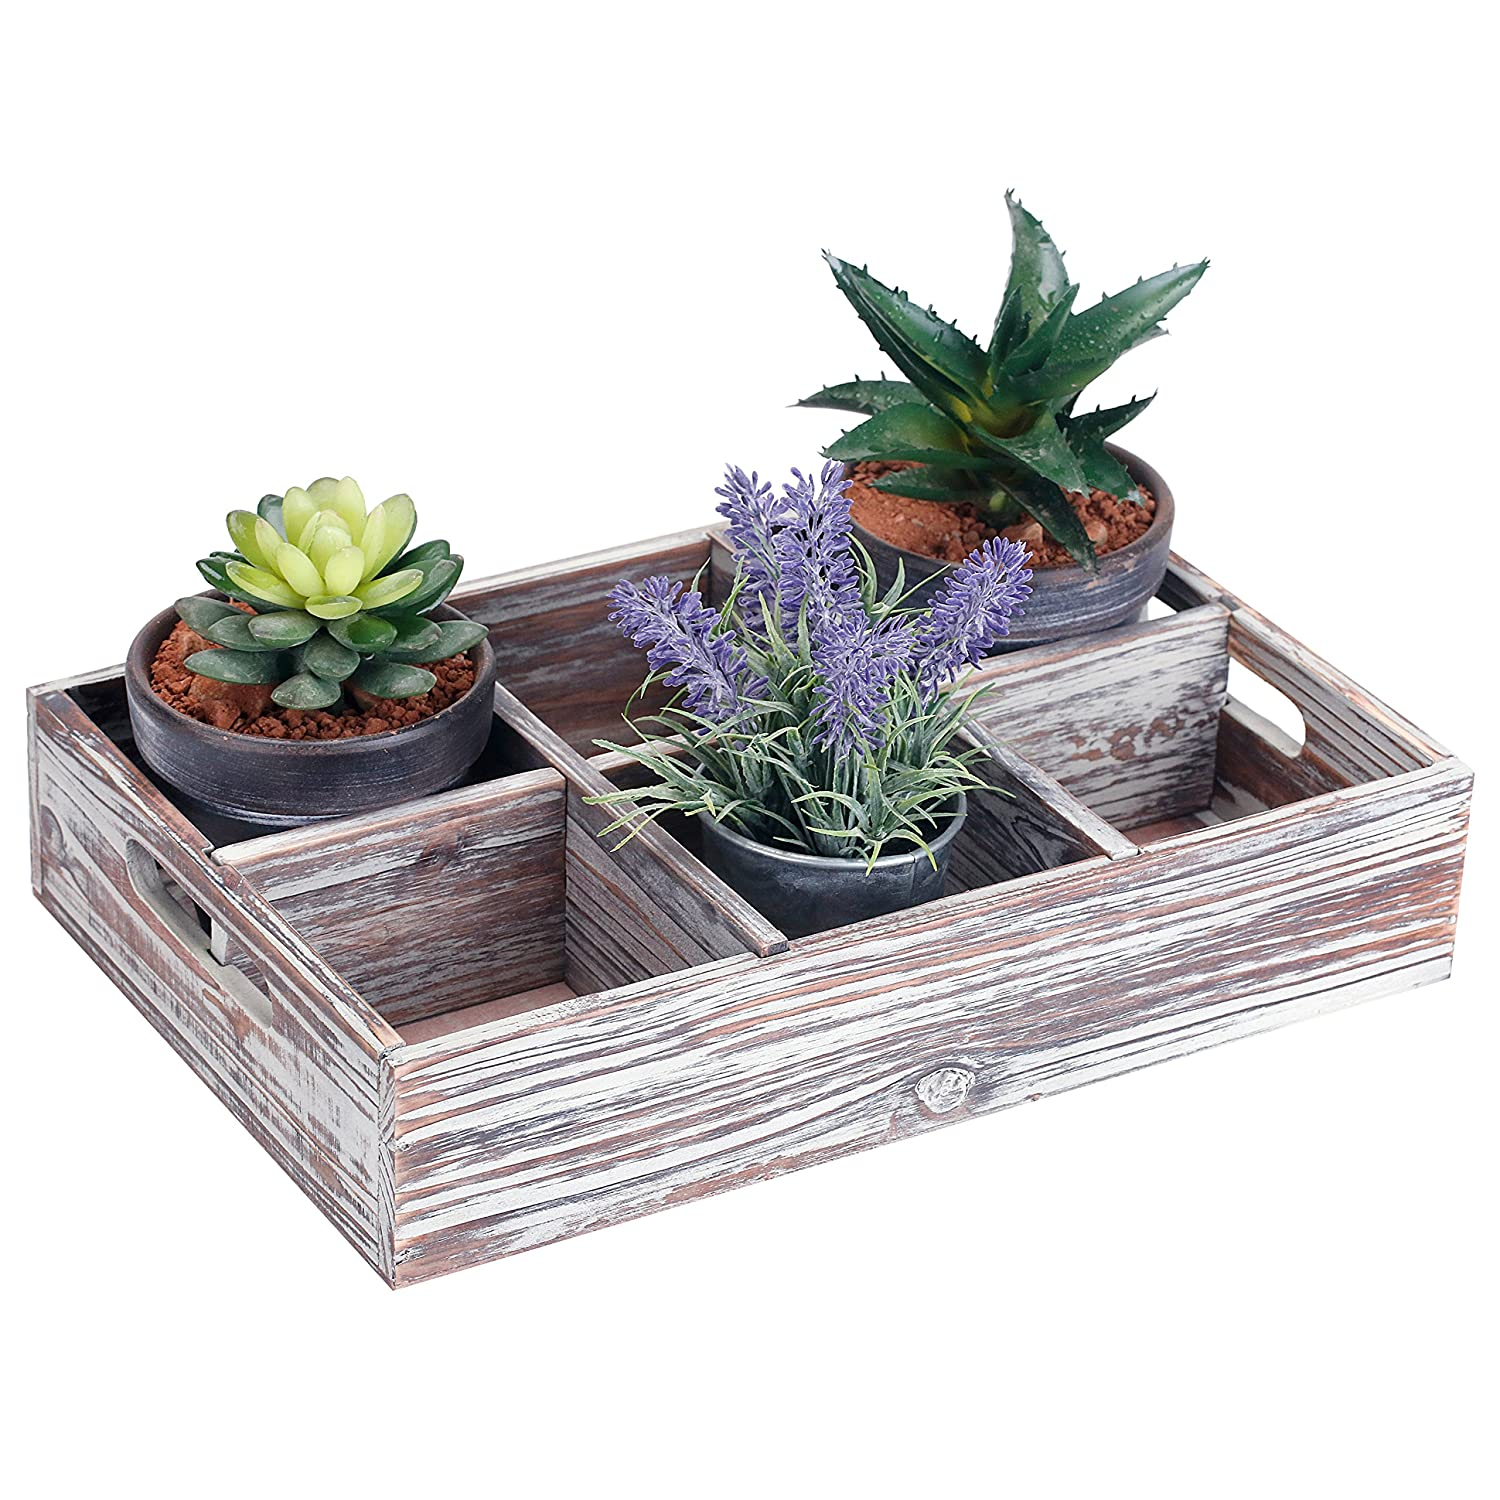 MyGift Rustic 6 Compartment Convertible Wood Serving Tray//Shadow Box with Handles and Removable Divider